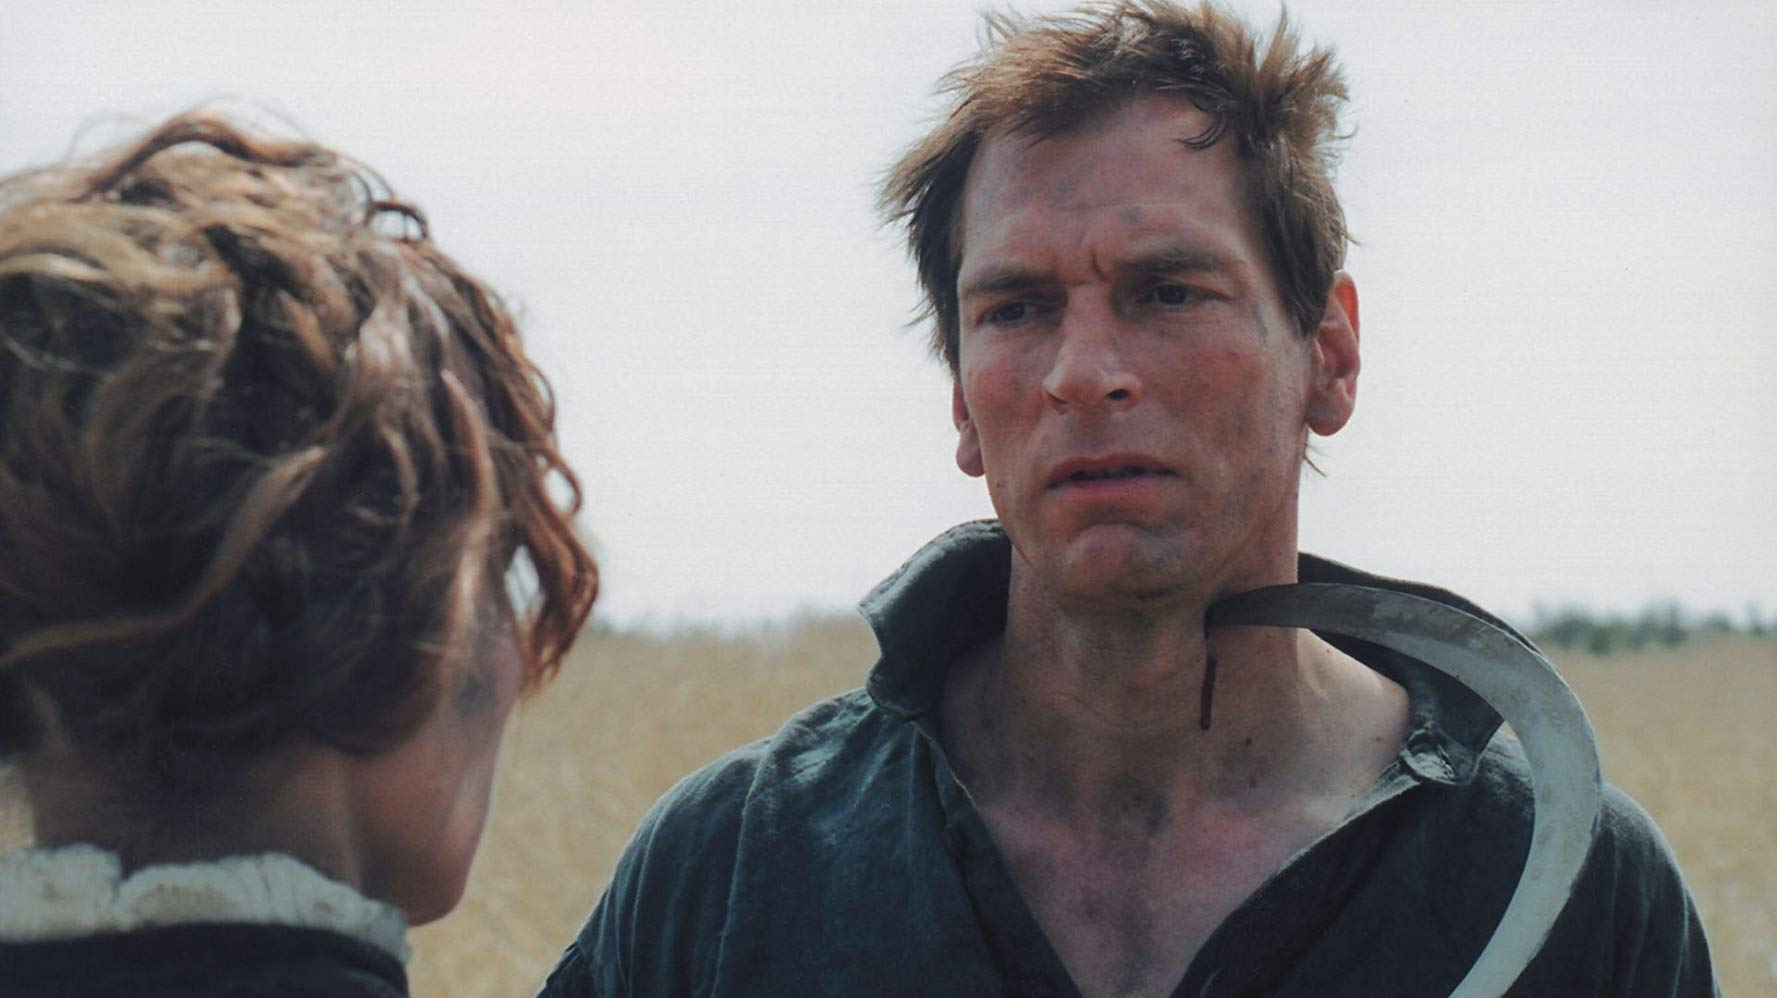 Julian Sands in Romasanta The Werewolf Hunt (2004)